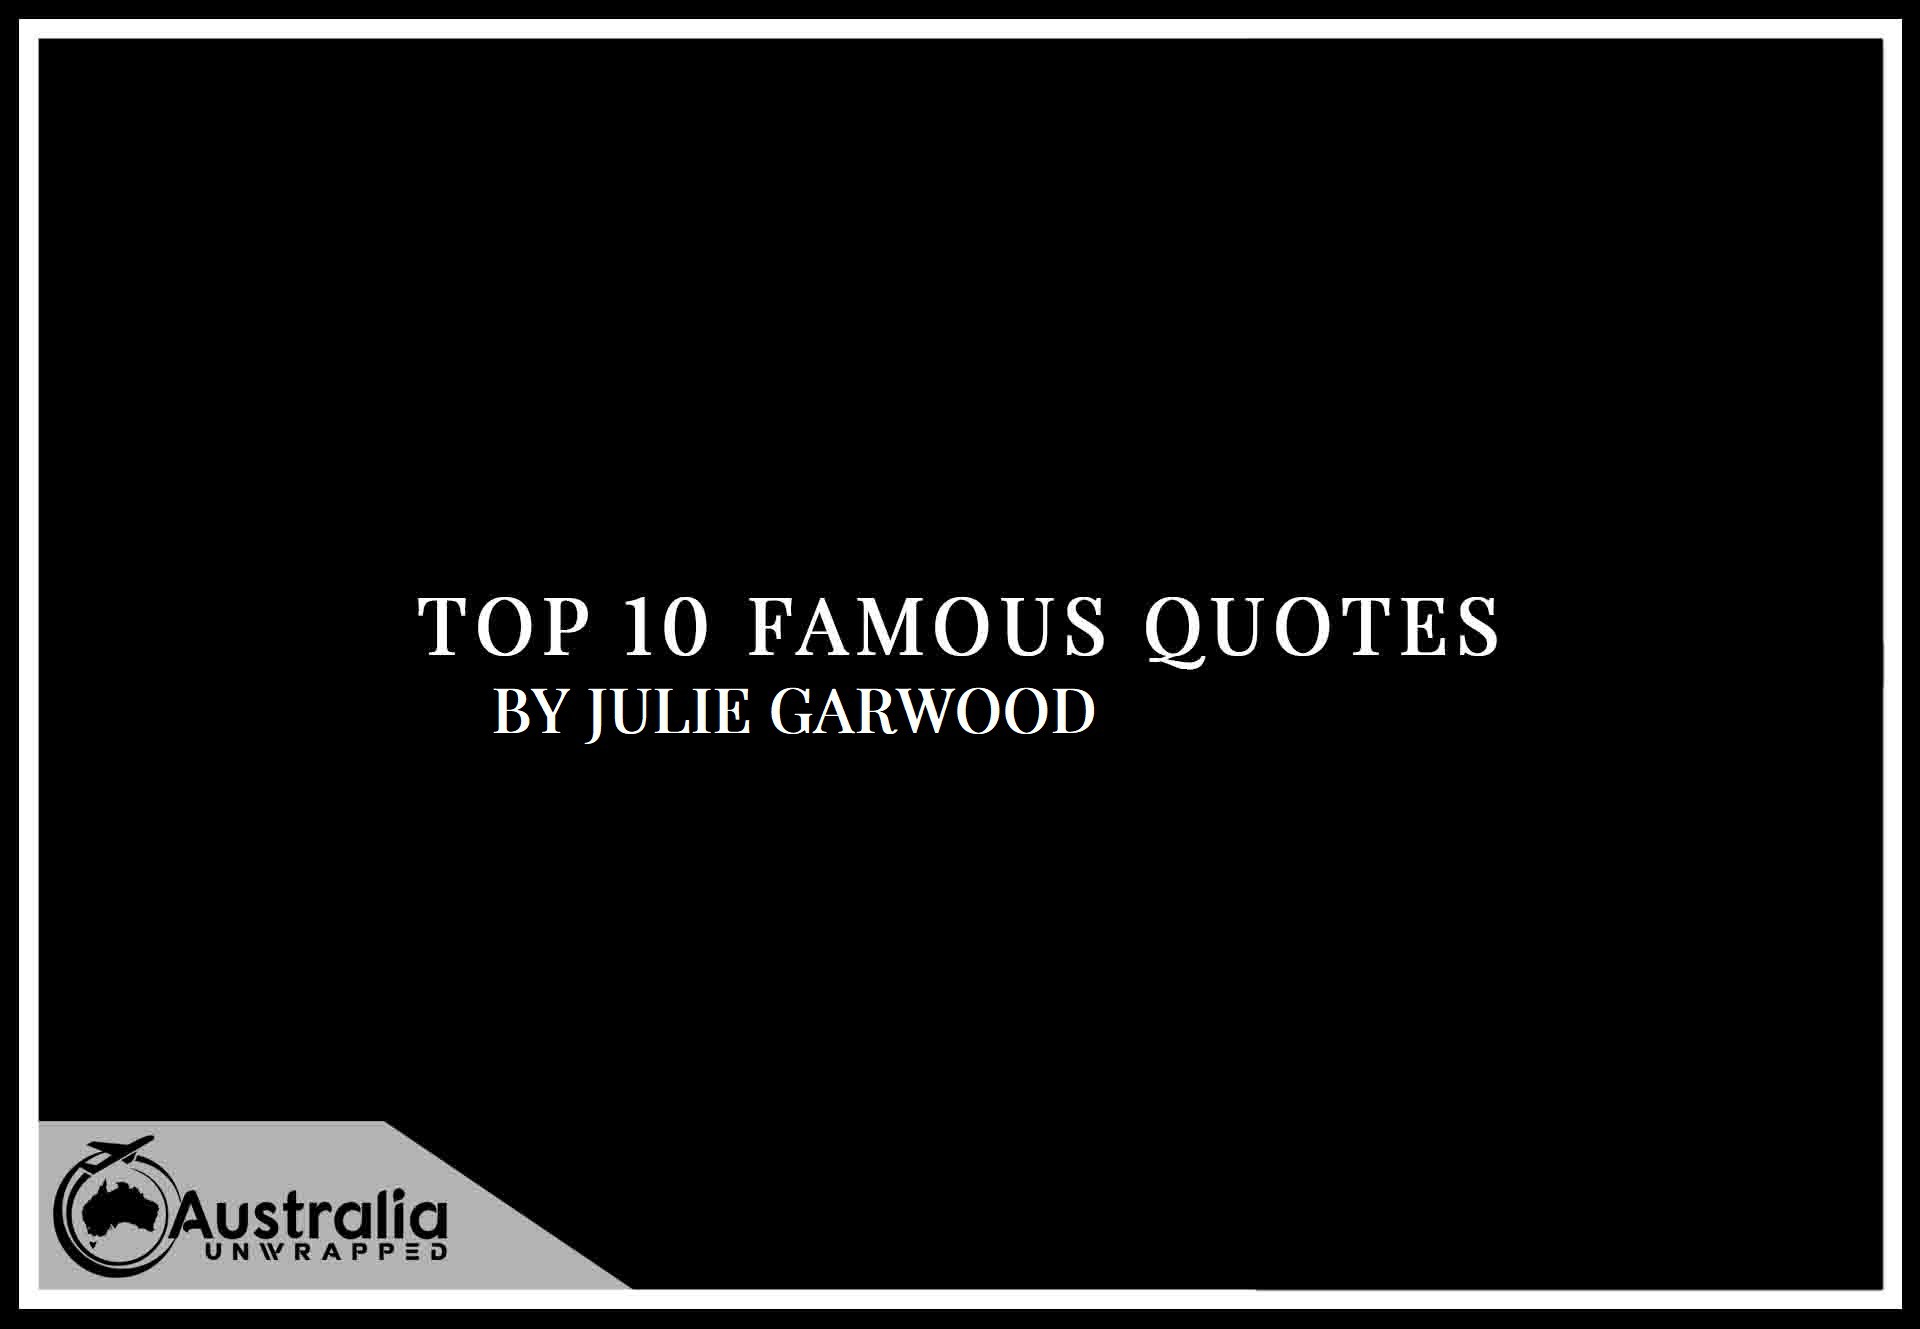 Top 10 Famous Quotes by Author Julie Garwood